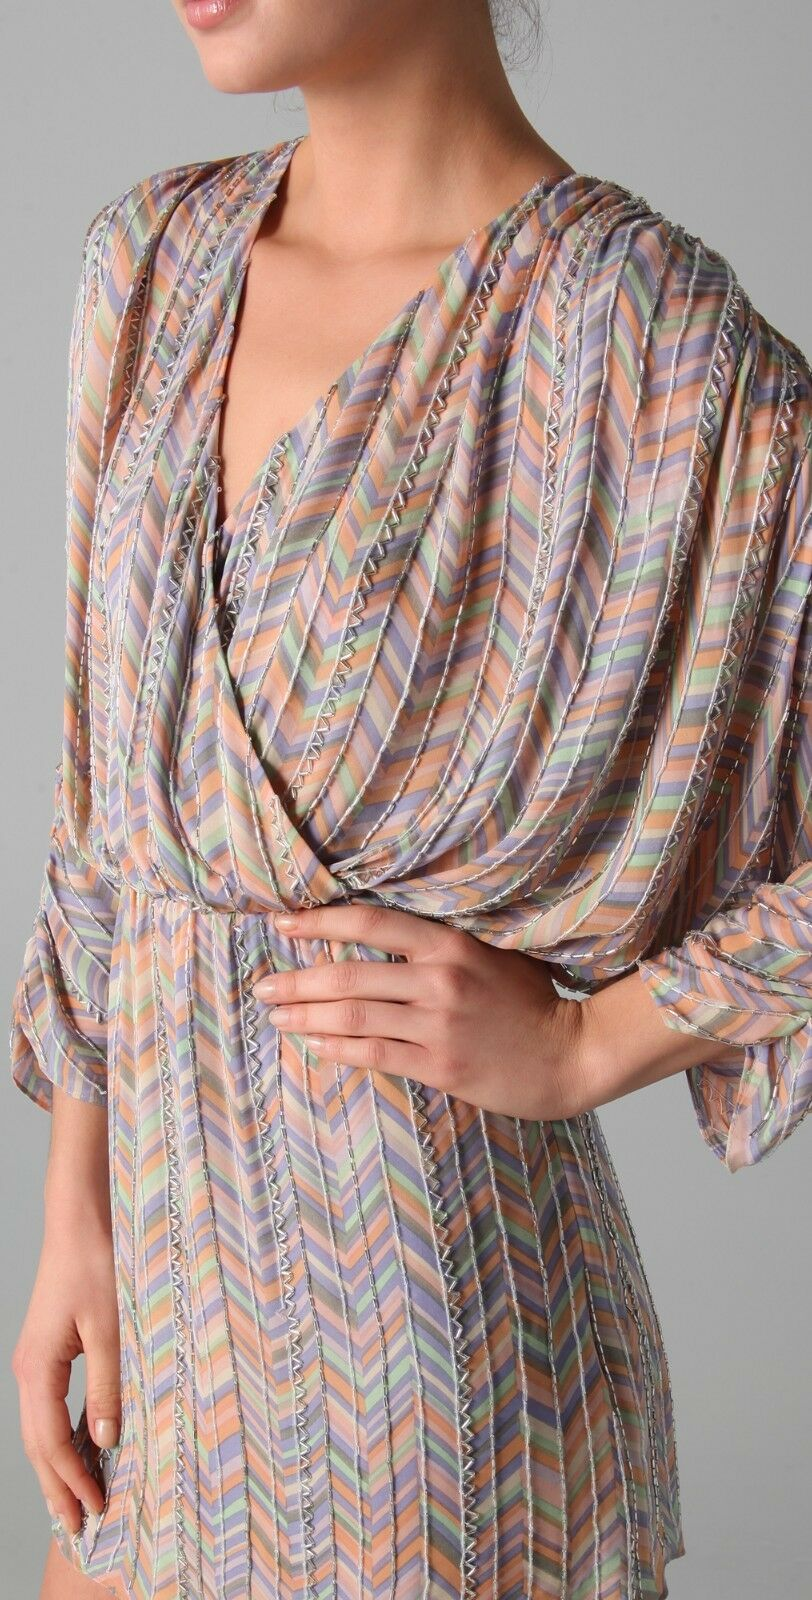 600 New New New Parker Zigzag Beaded Batwing Party Silk Dress size L Large 99dd07